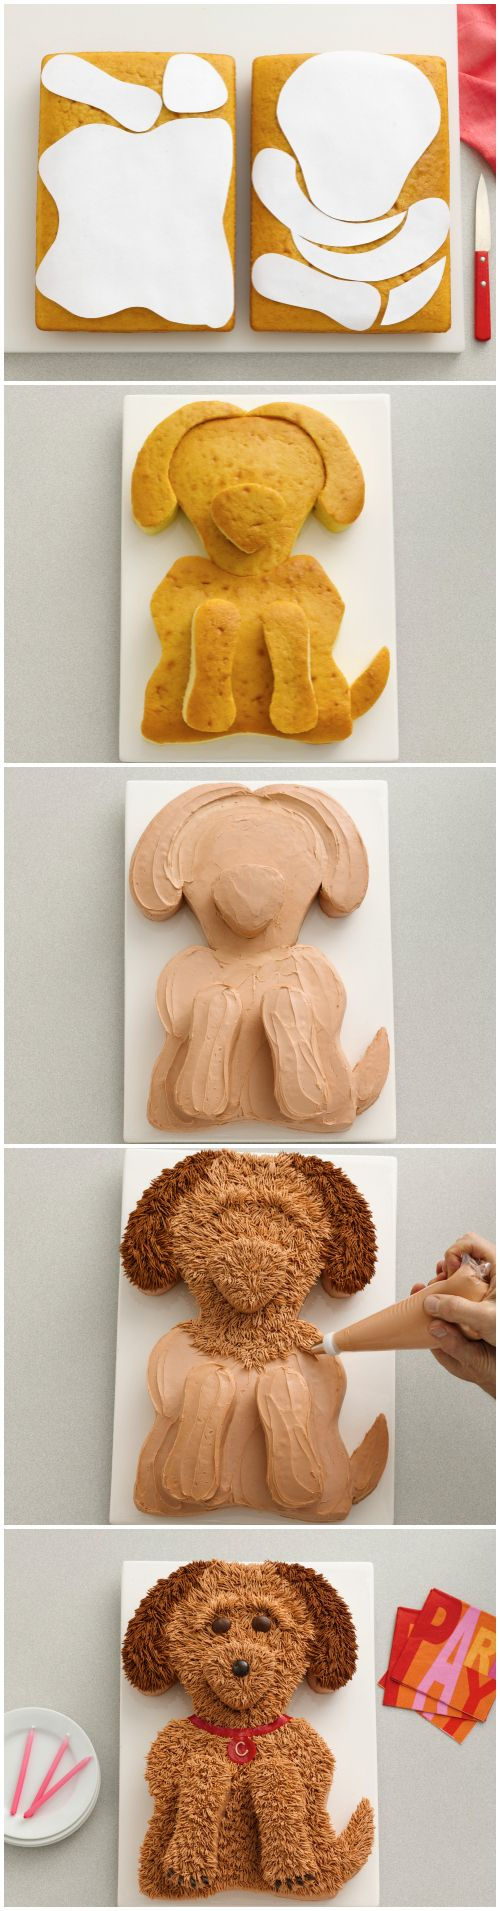 Your pastry bag's grass tip is the key to getting the fur on this gorgeous golden doodle just right. Click through to get the printable template—it makes cutting the cake shapes a breeze!